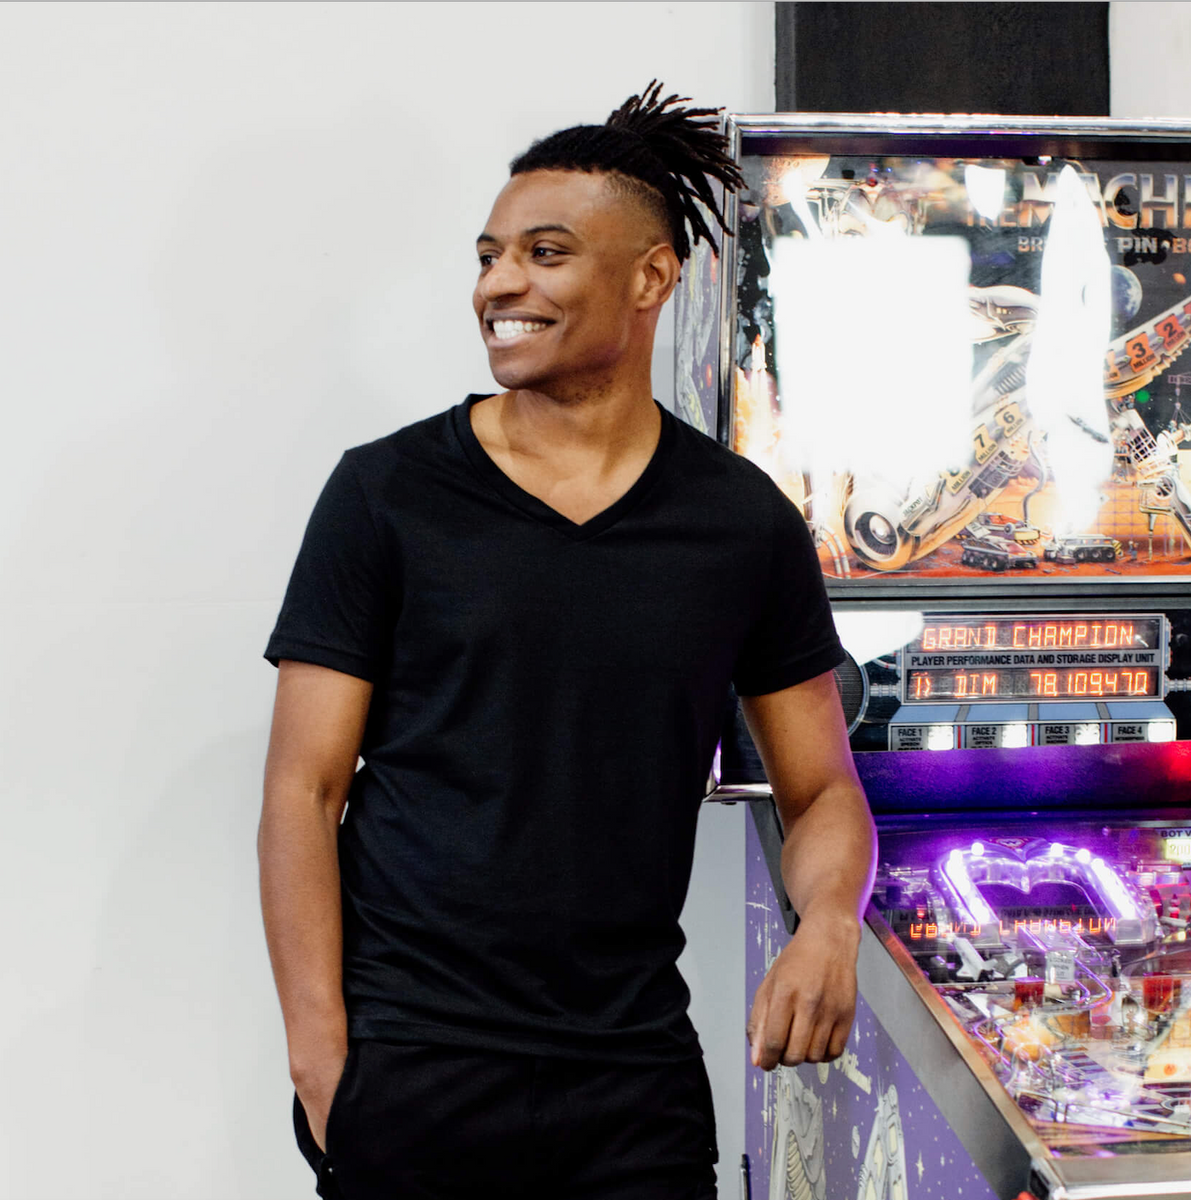 Man is smiling and leaning on a pinball machine wearing V-neck Citizen goods black t-shirt and CP black cargo pants